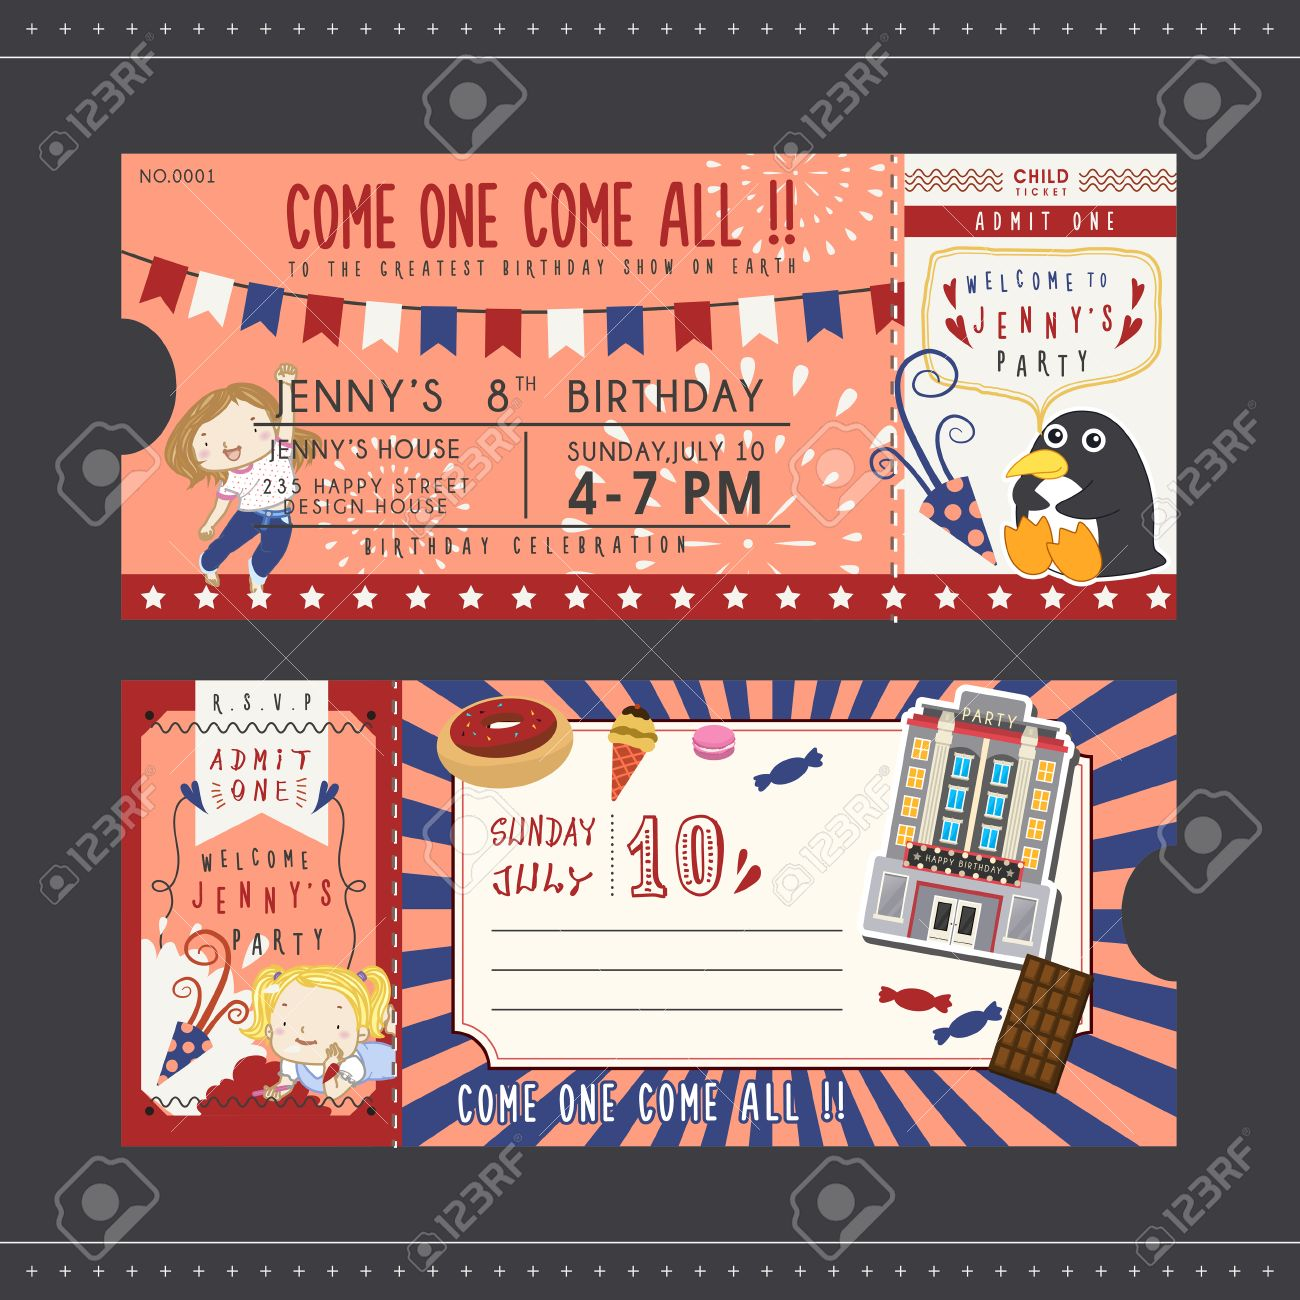 Lovely Birthday Party Invitation Ticket For Children Royalty Free ...